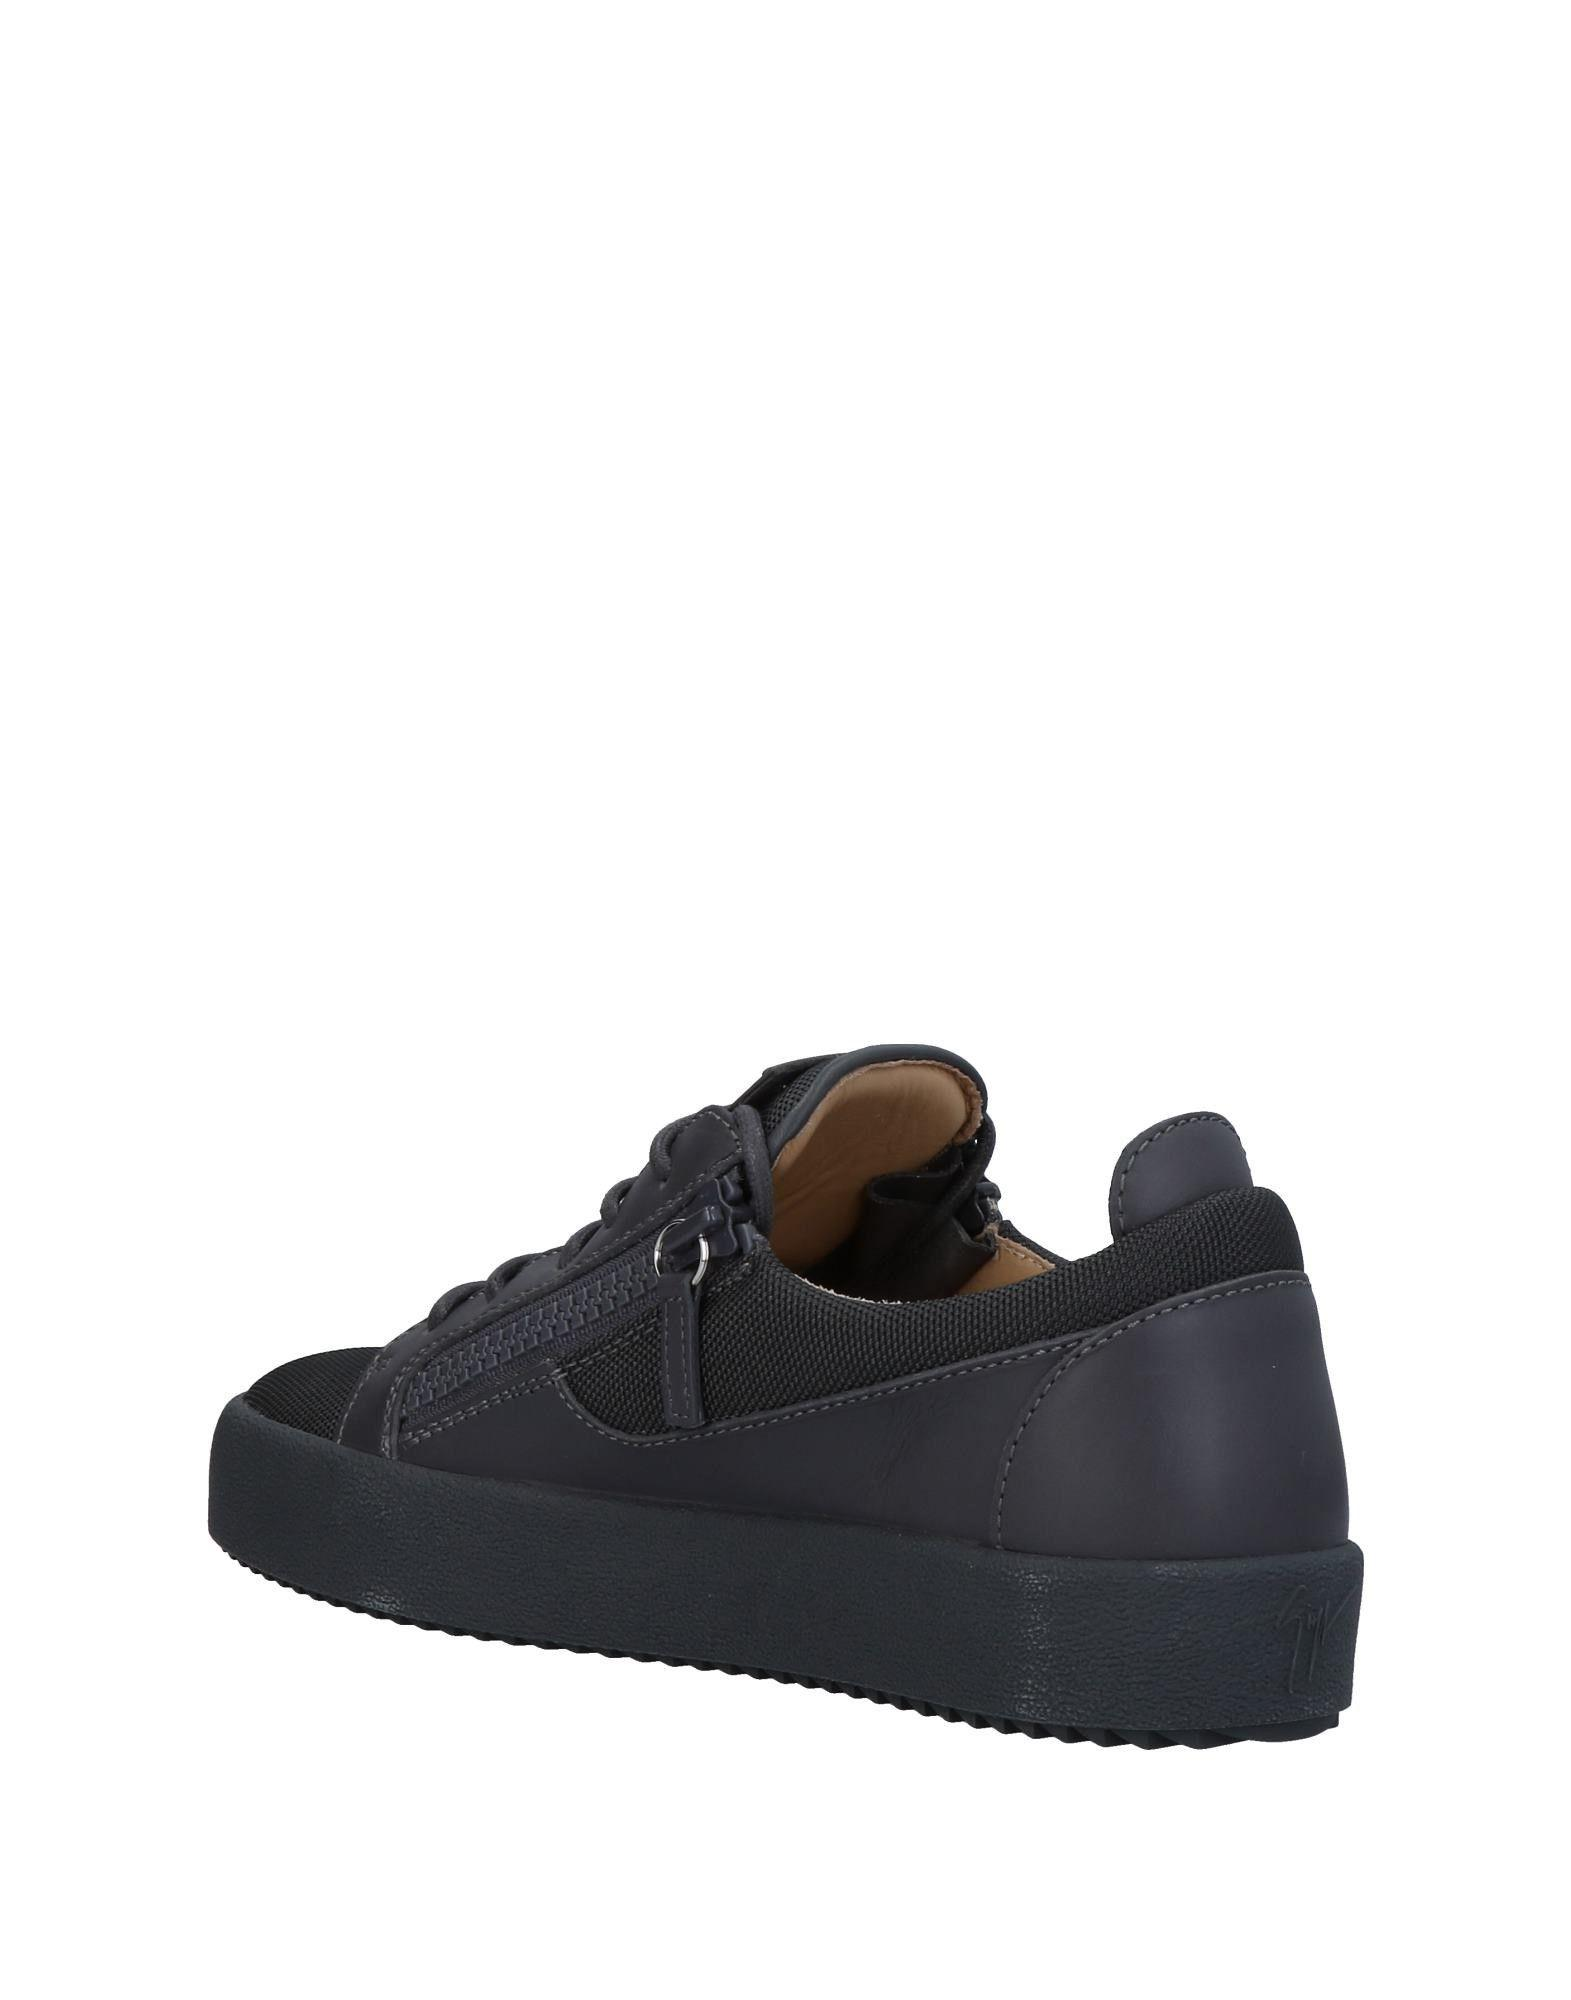 Giuseppe Zanotti Leather Low-tops & Sneakers in Grey (Grey) for Men